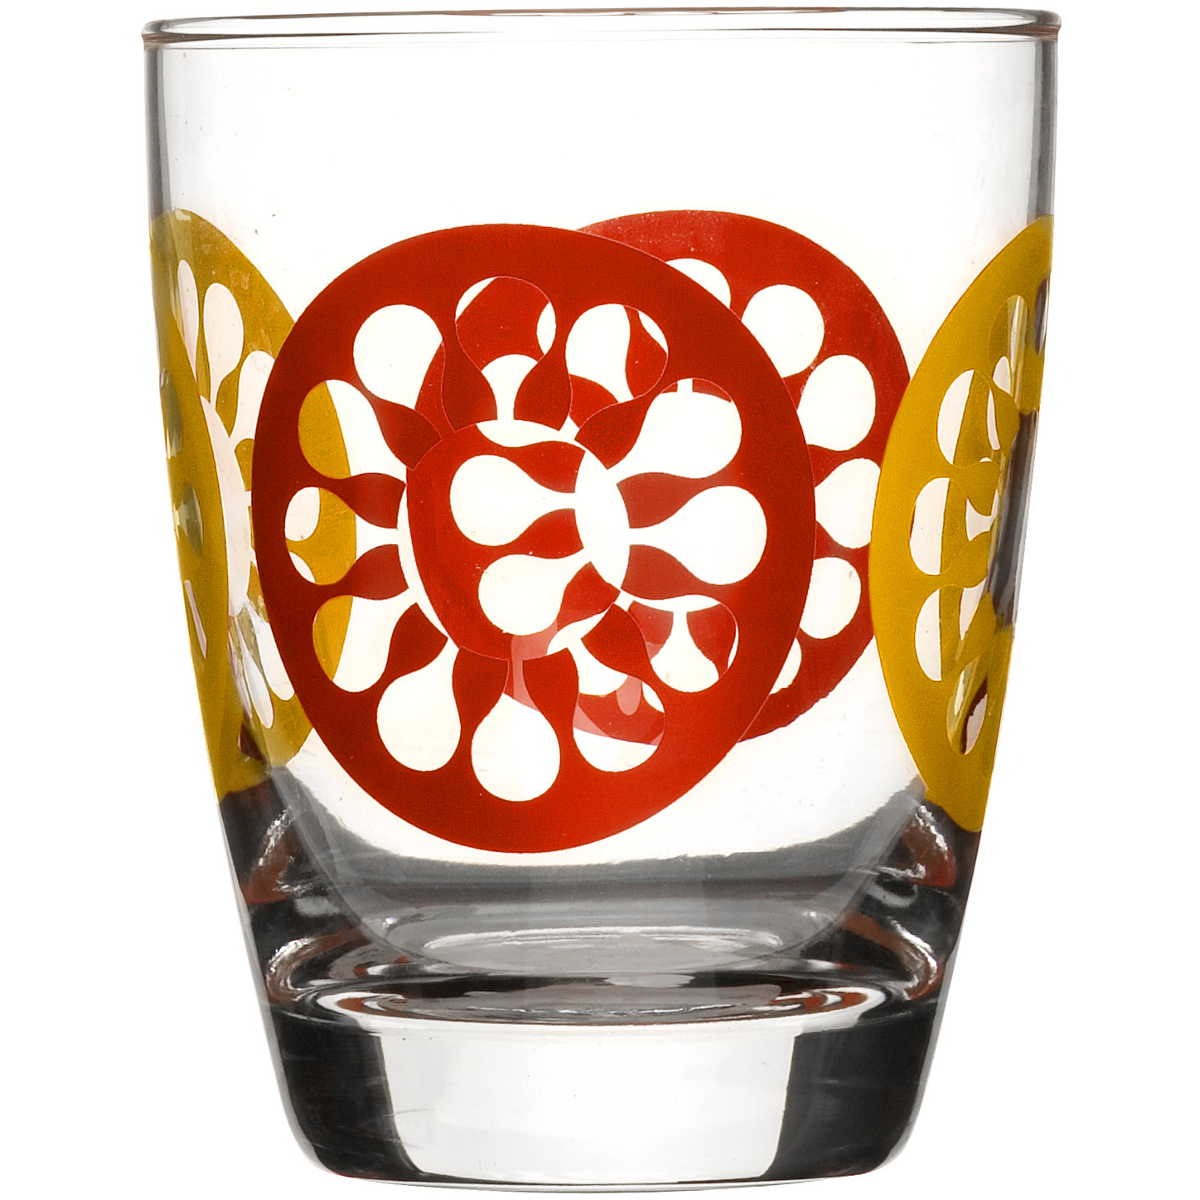 Sagaform Juicy 12.75 Ounces Red Drinking Glasses, Set of 4